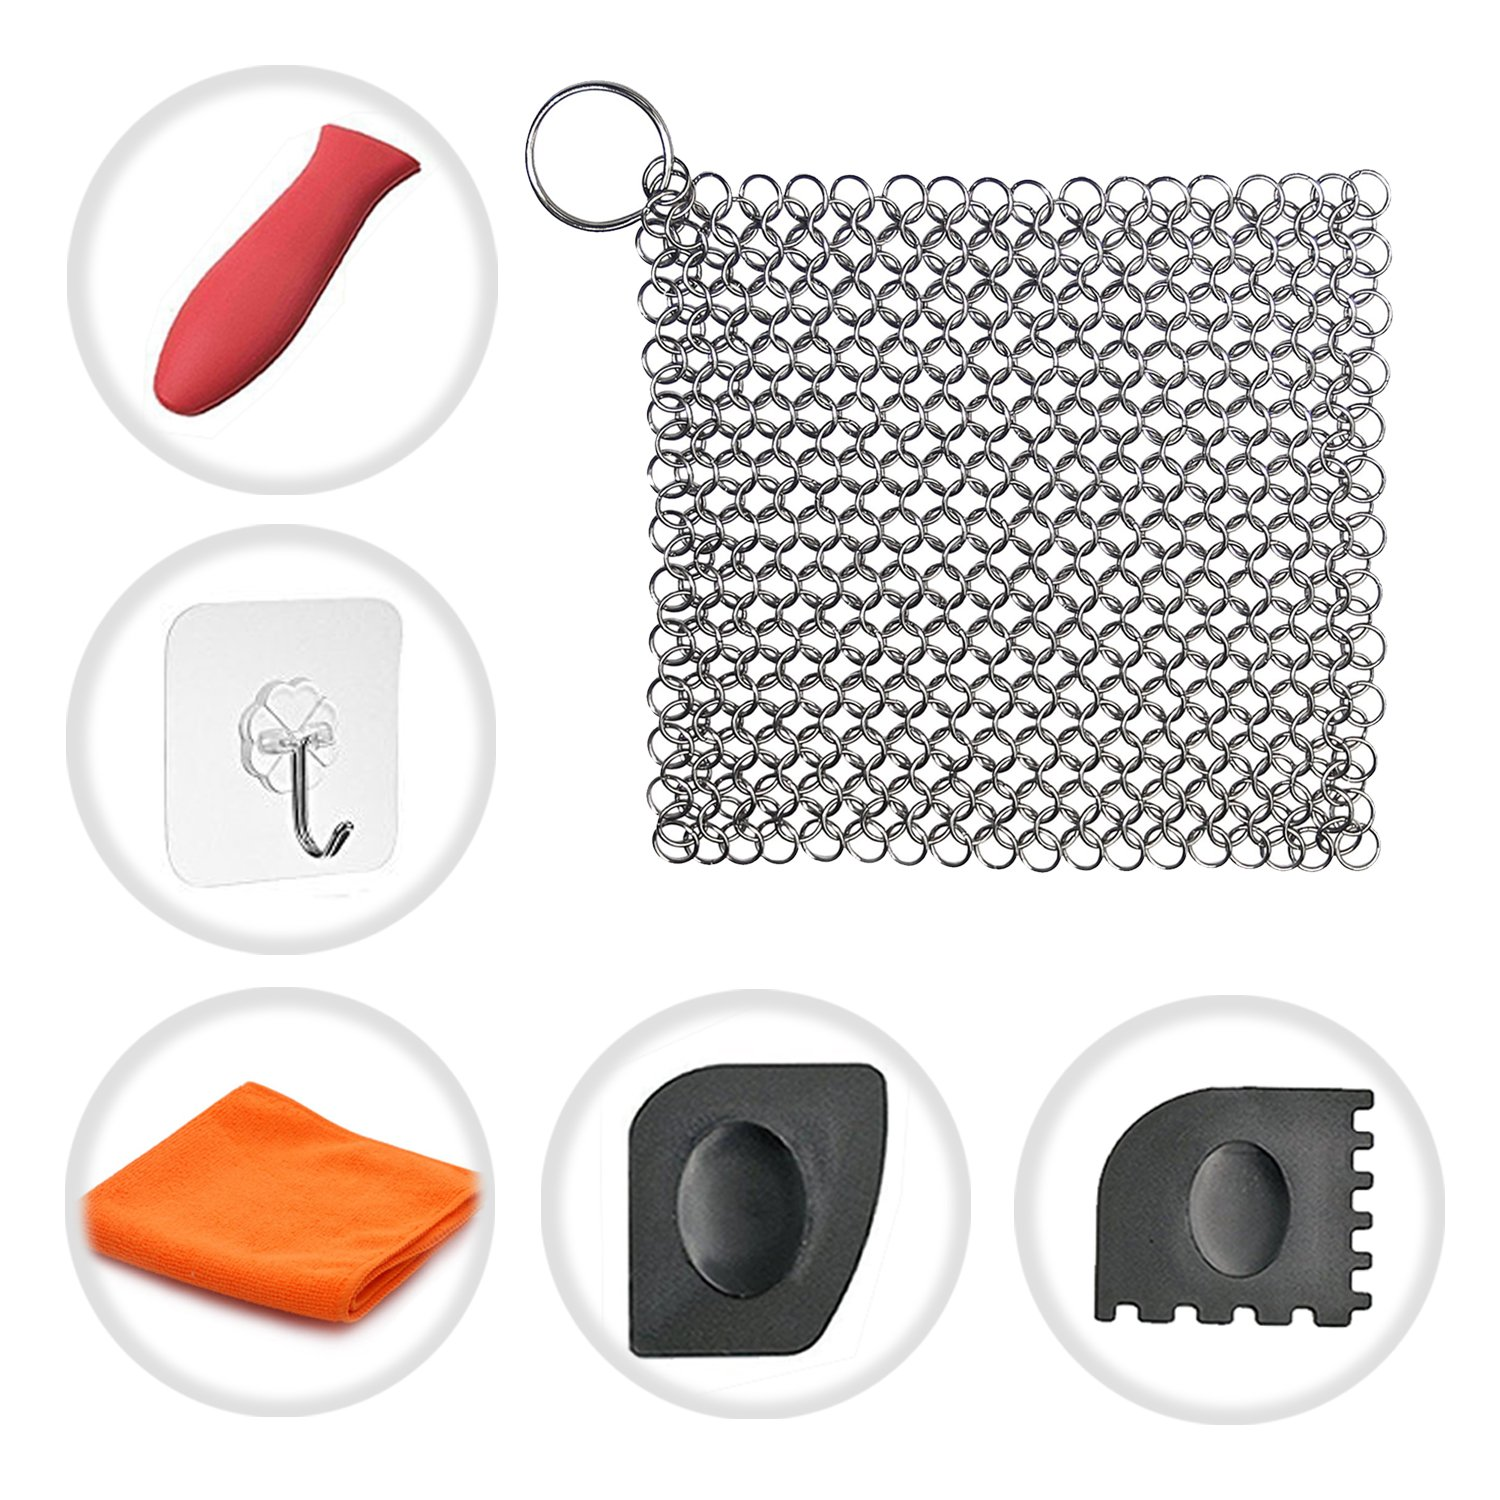 Cast Iron Cleaner Cosmer XL 7x7 Premium Stainless Steel Chainmail Scrubber with Bonus Silicone Hot Handle Holder + Pan Scraper + Grill Scraper + Kitchen Towel + Wall Hook (Square)